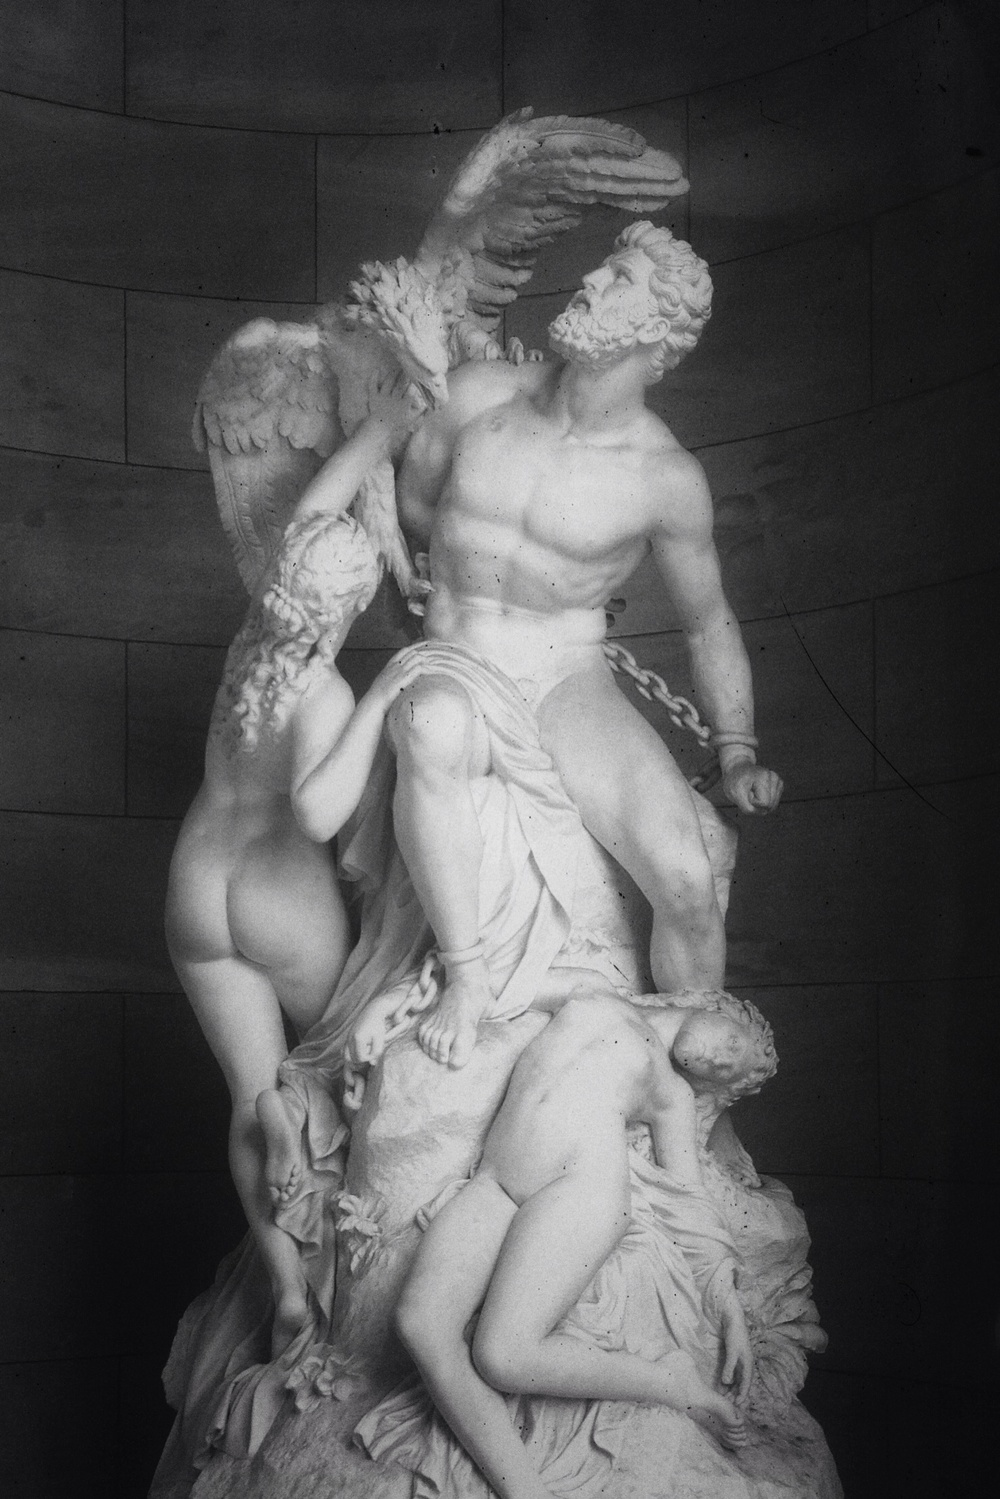 Prometheus and the Oceanids  by Eduard Müller 1879   I saw this outside of the Alte Nationalgalerie on Museumsinsel. The posing, fabric and emotion caught my attention.